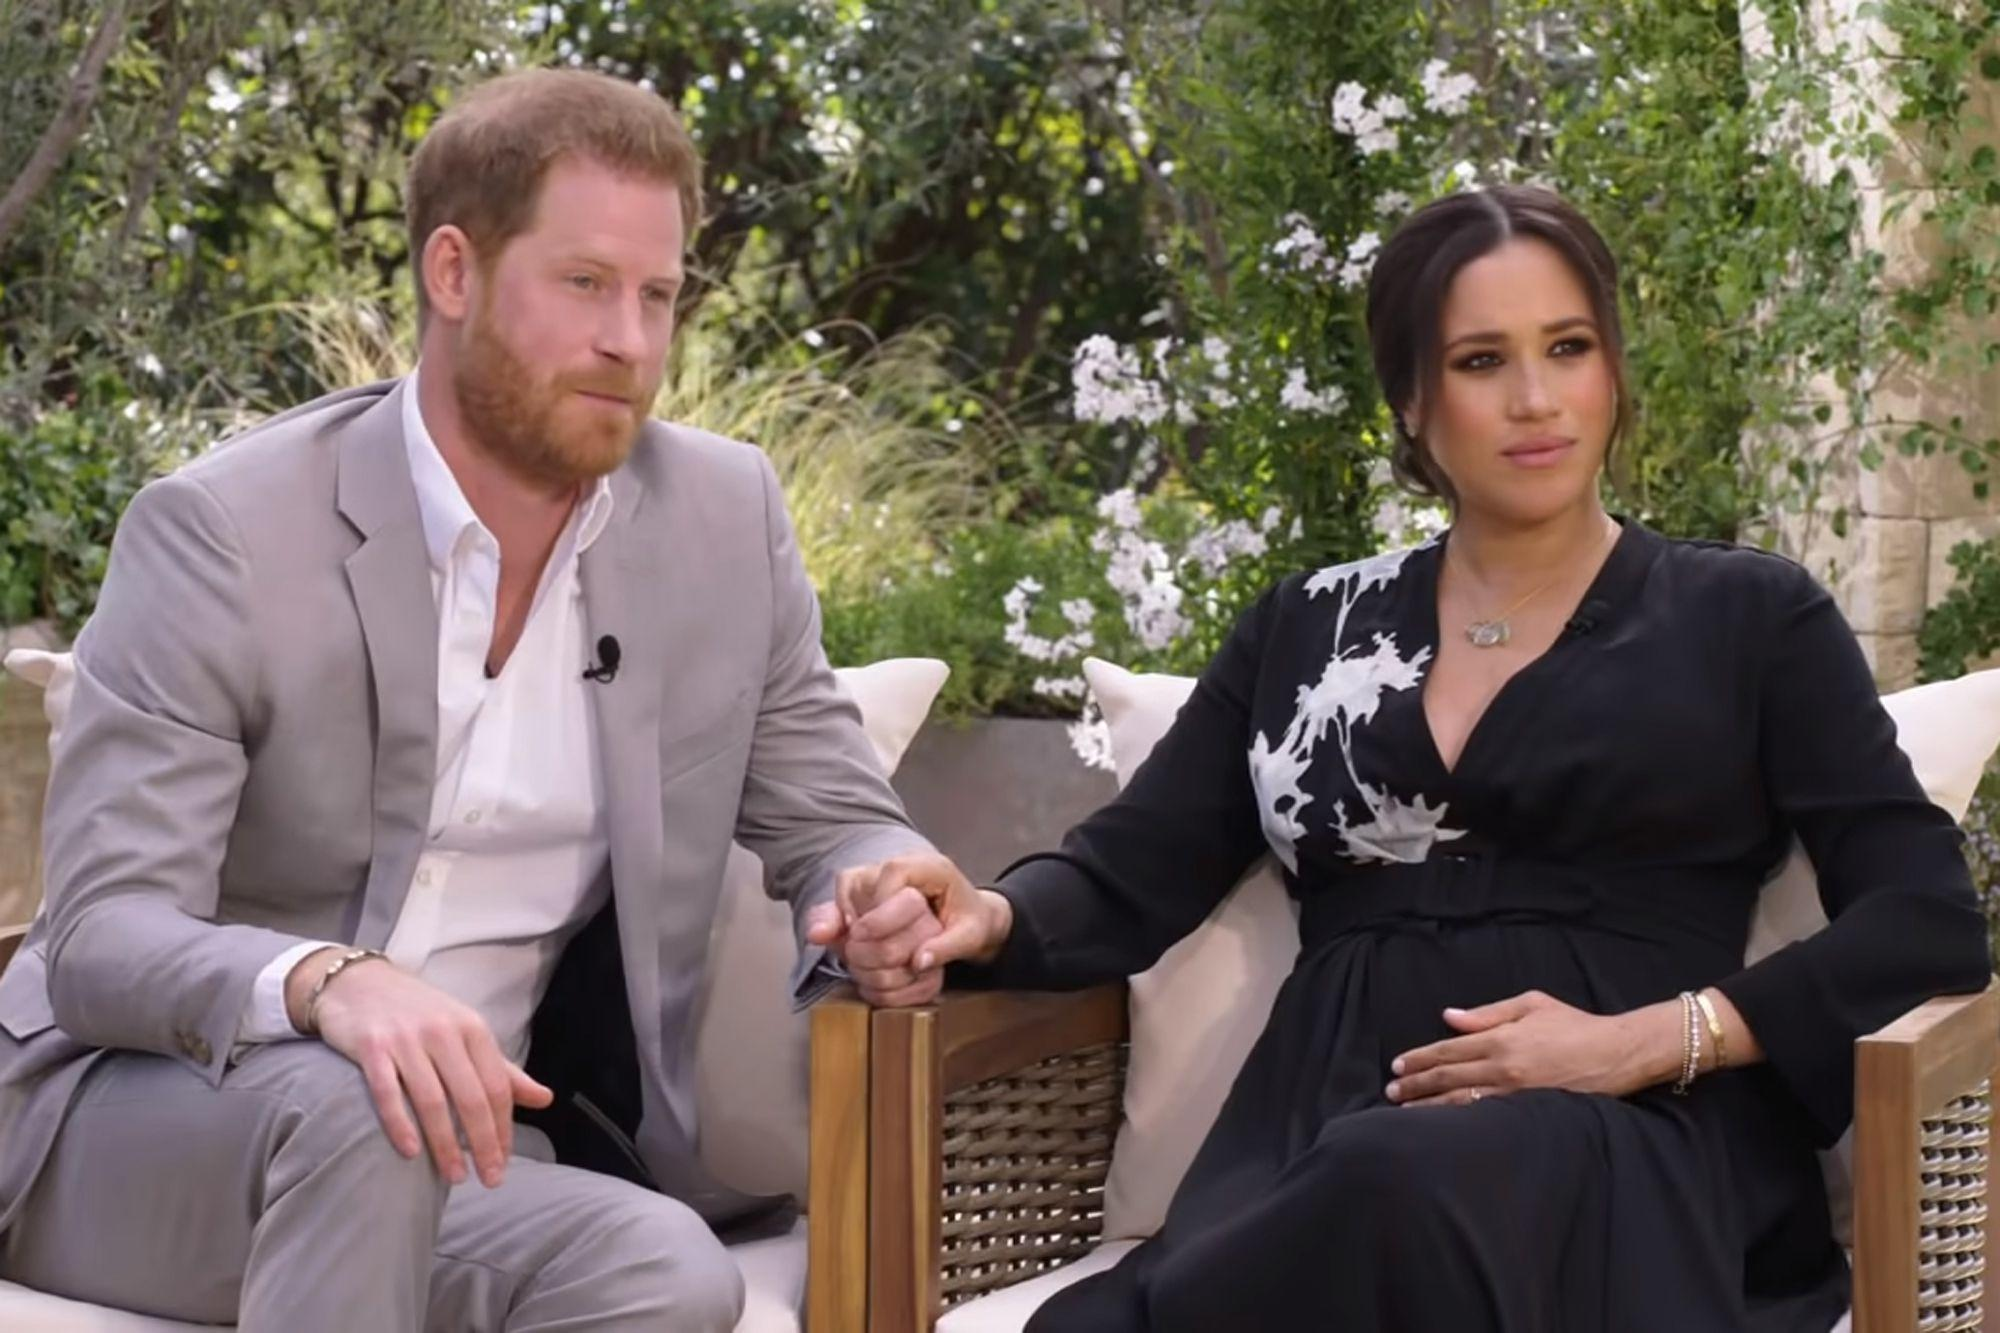 A former employee of Prince Harry and Meghan Markle revealed the nature of their work